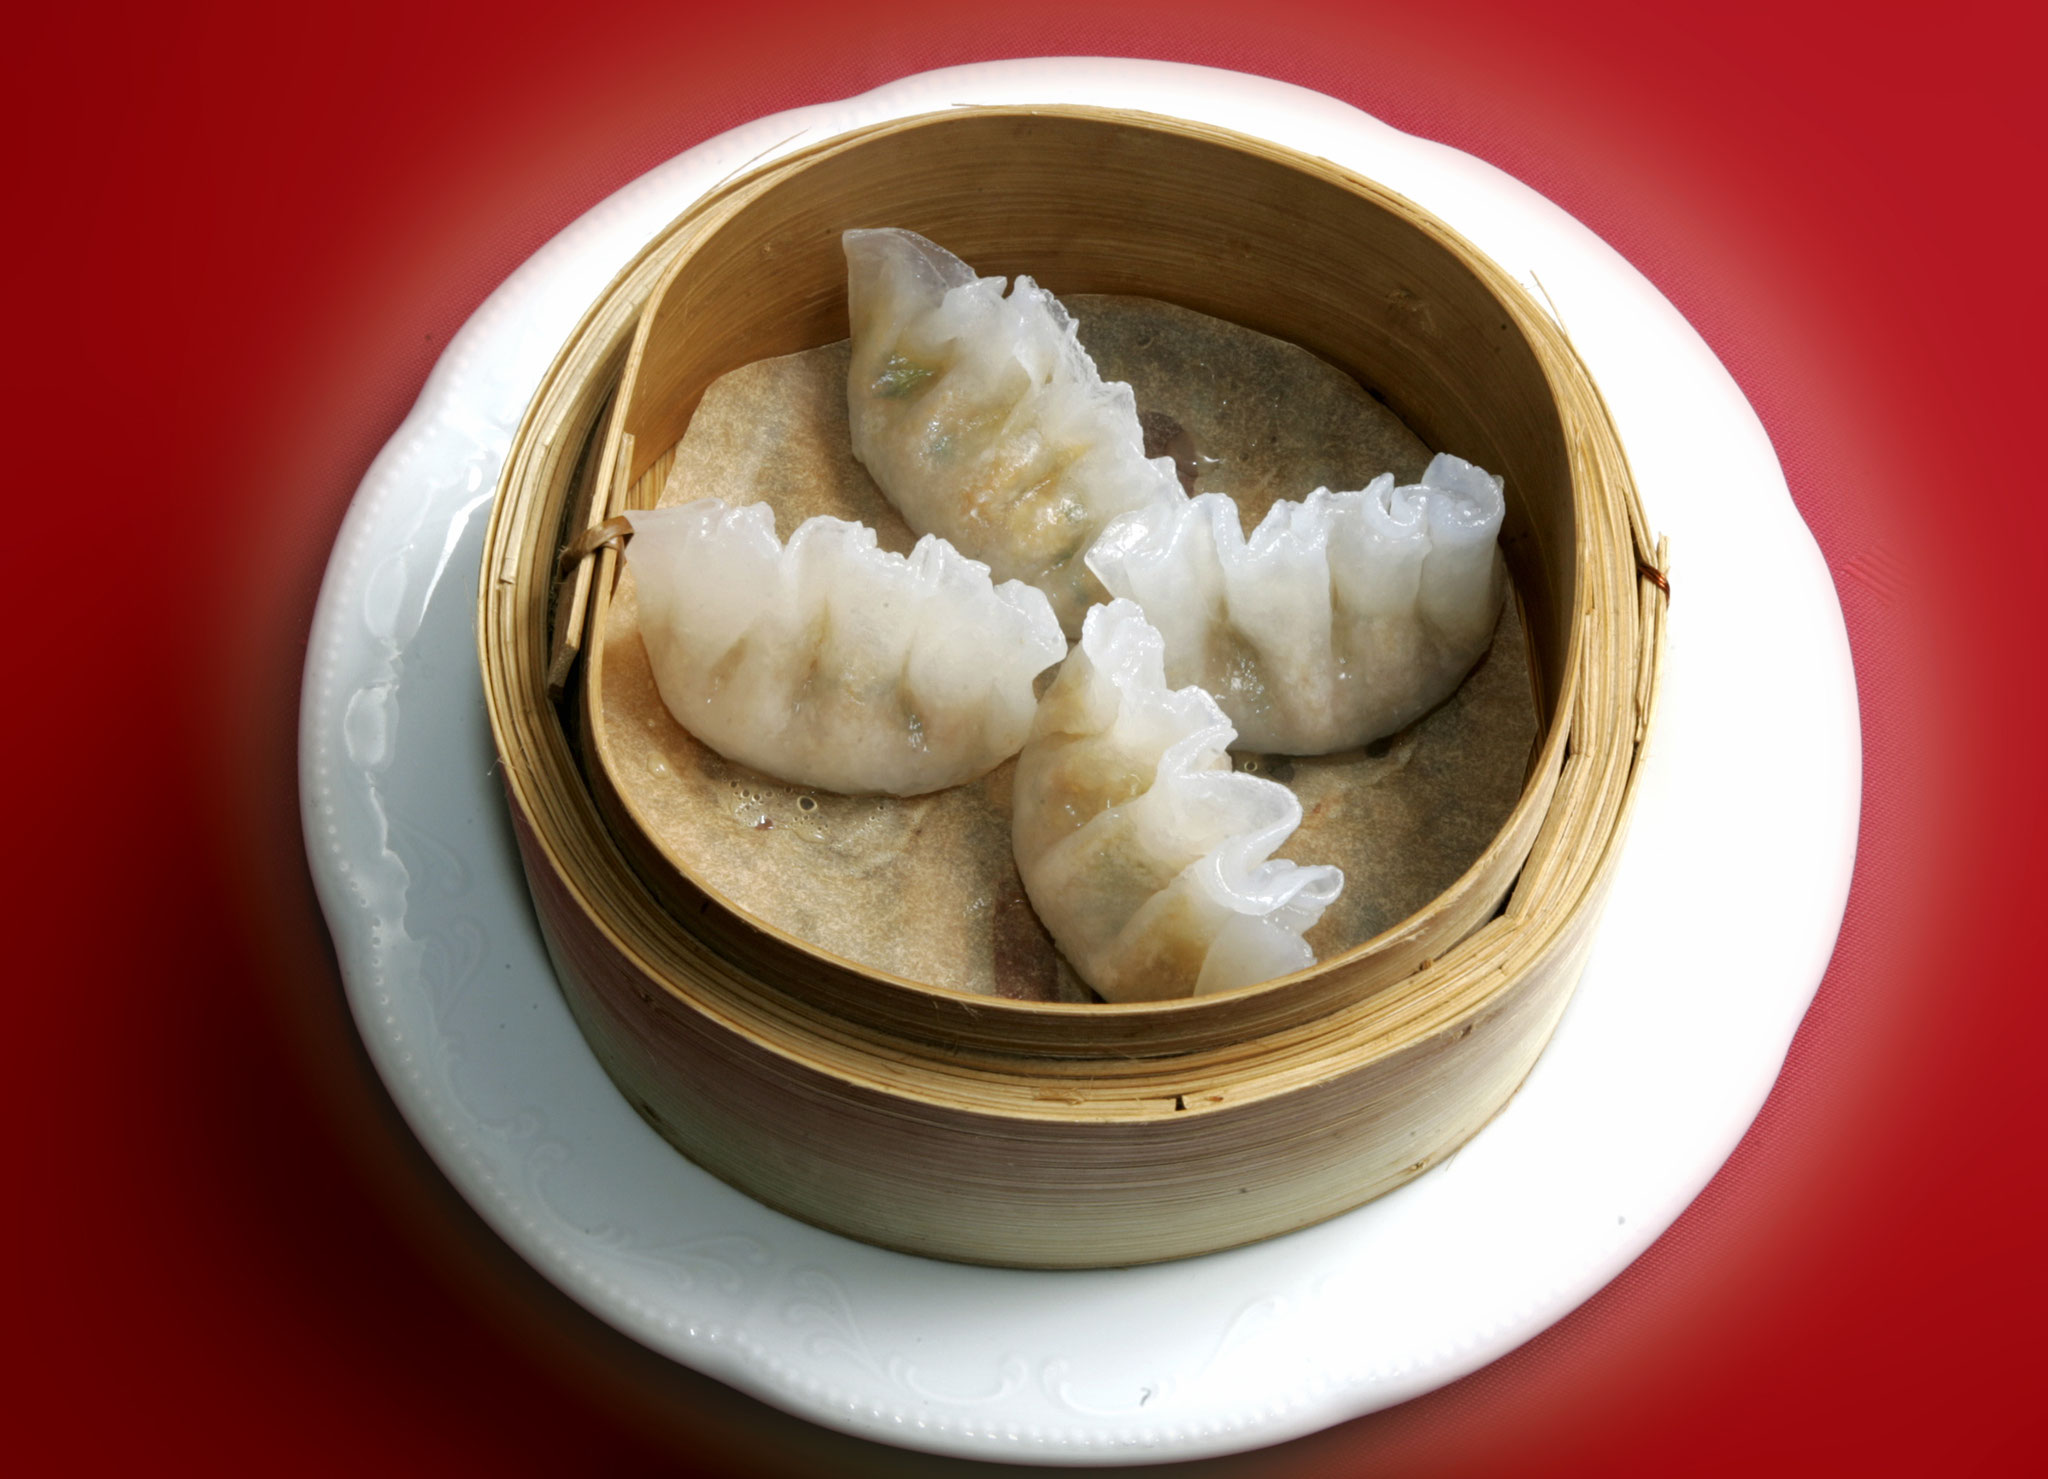 Steamed Dumpling filled with Celery and Mushroom